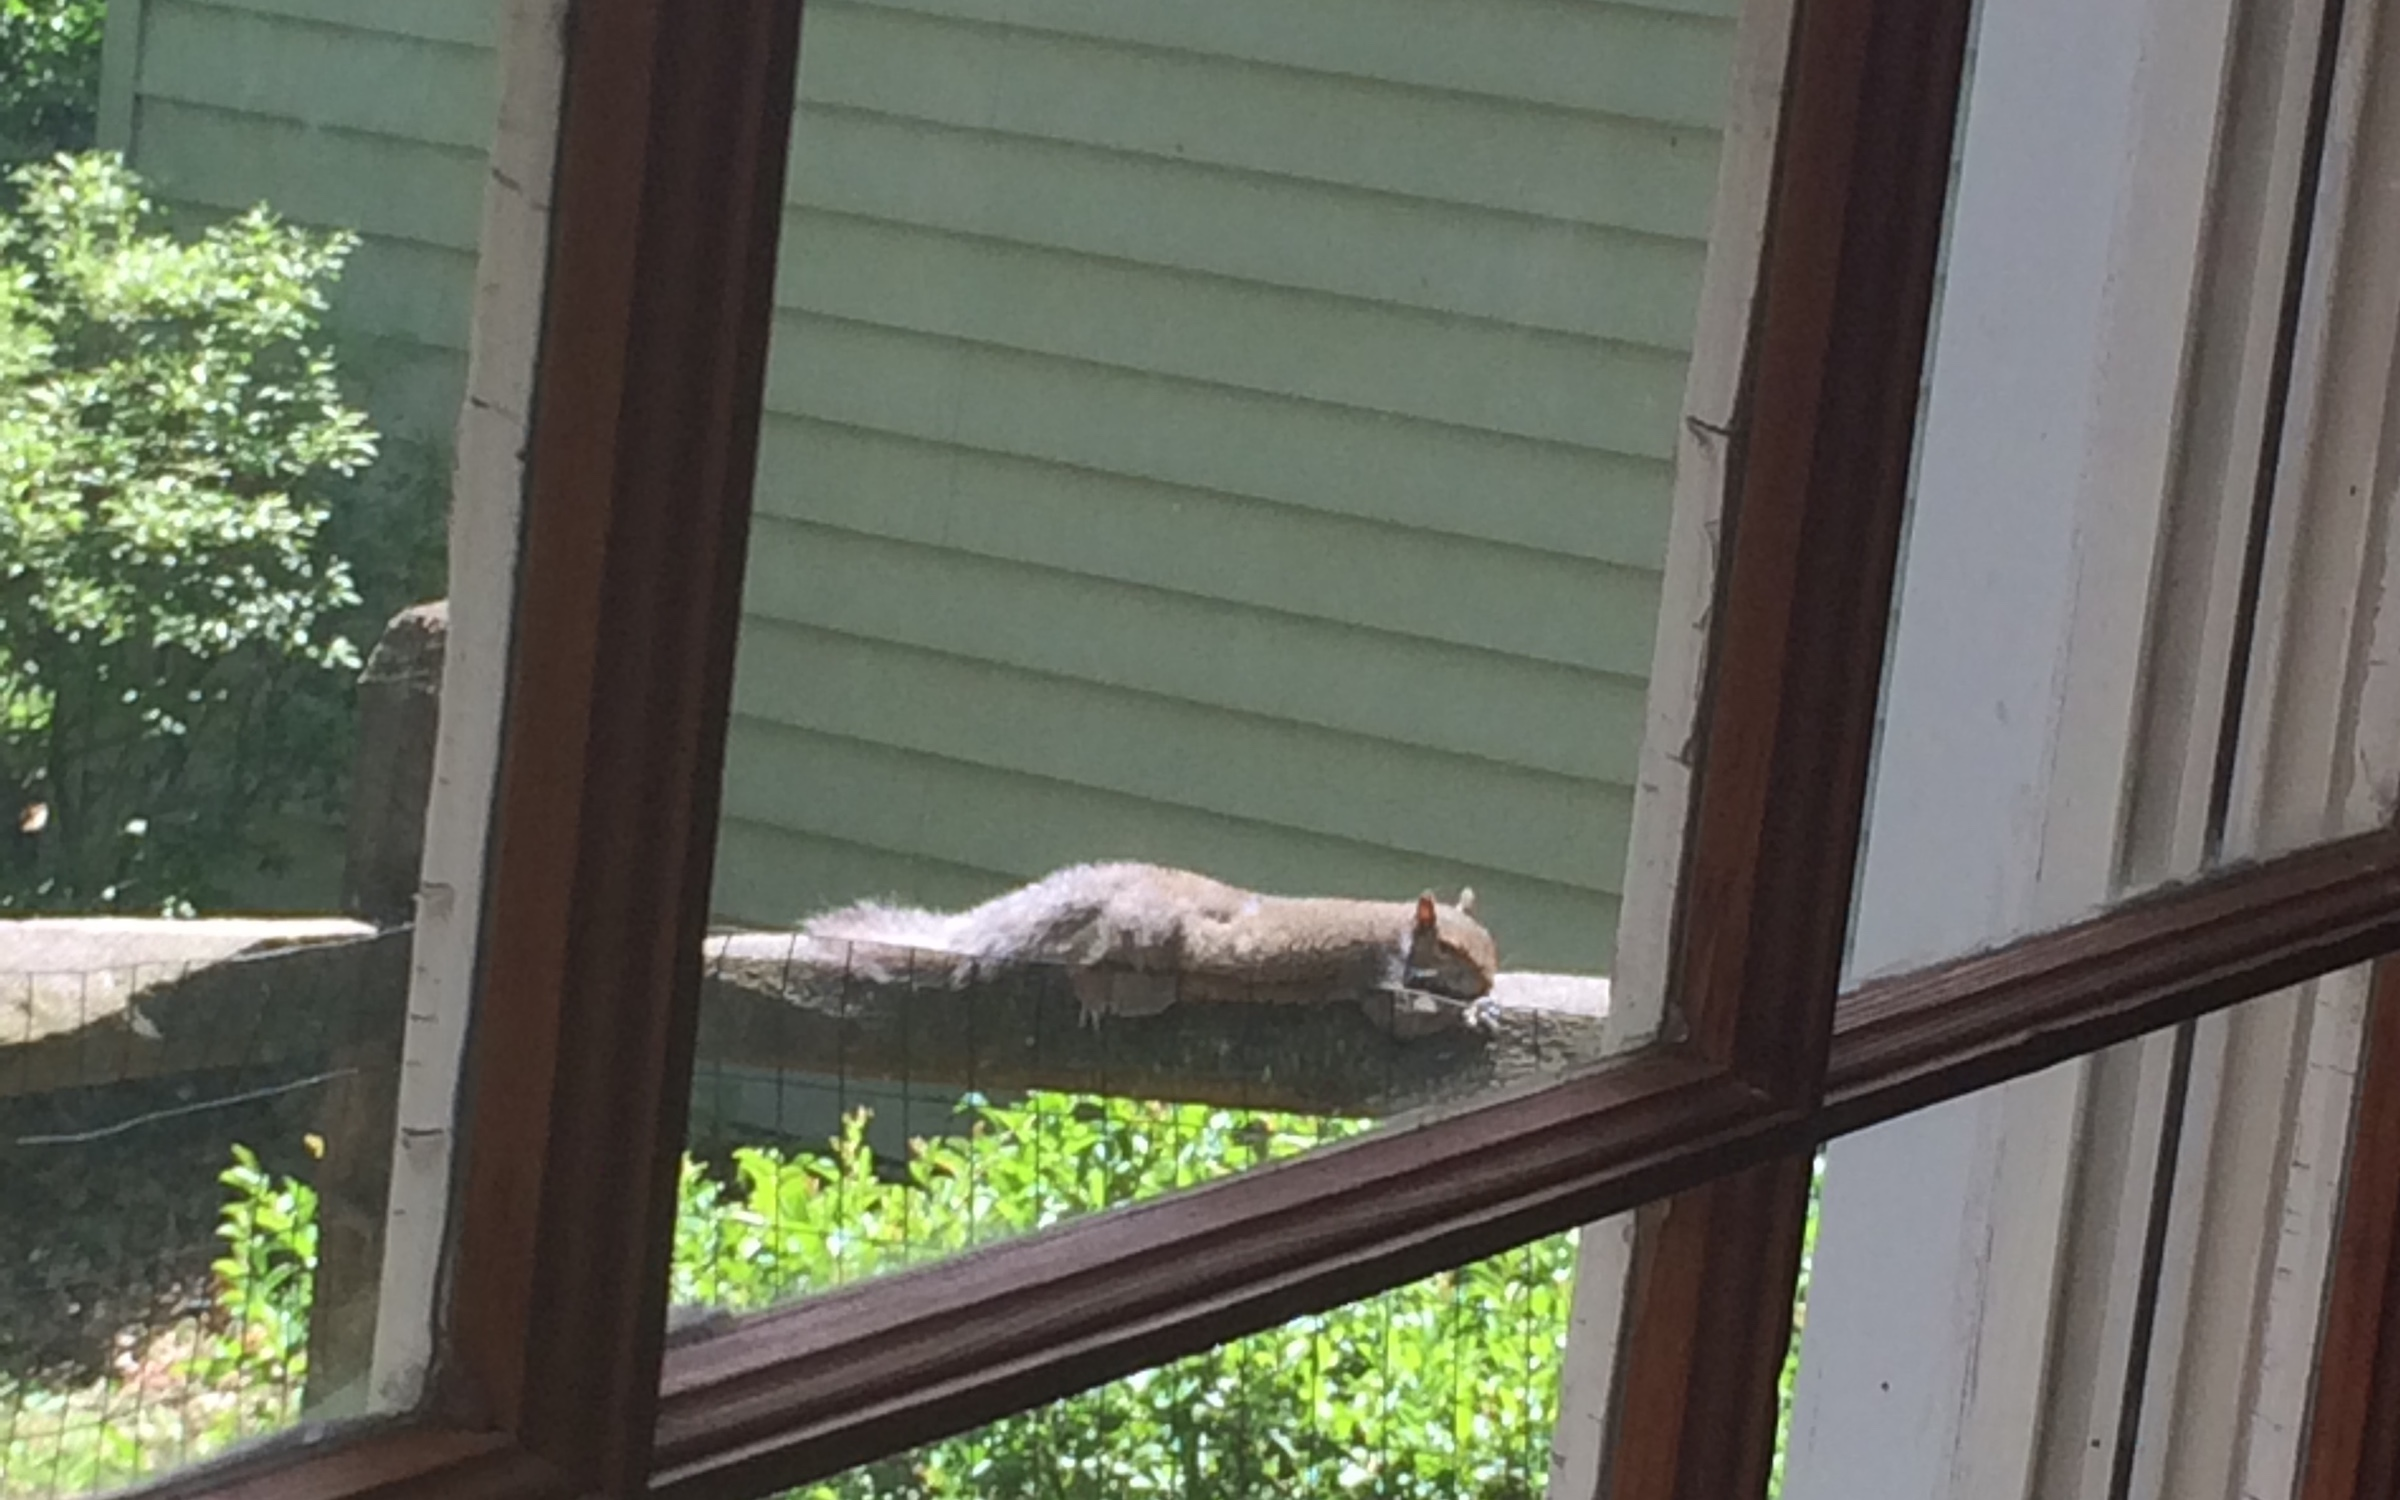 squirrel relaxing on a fence post